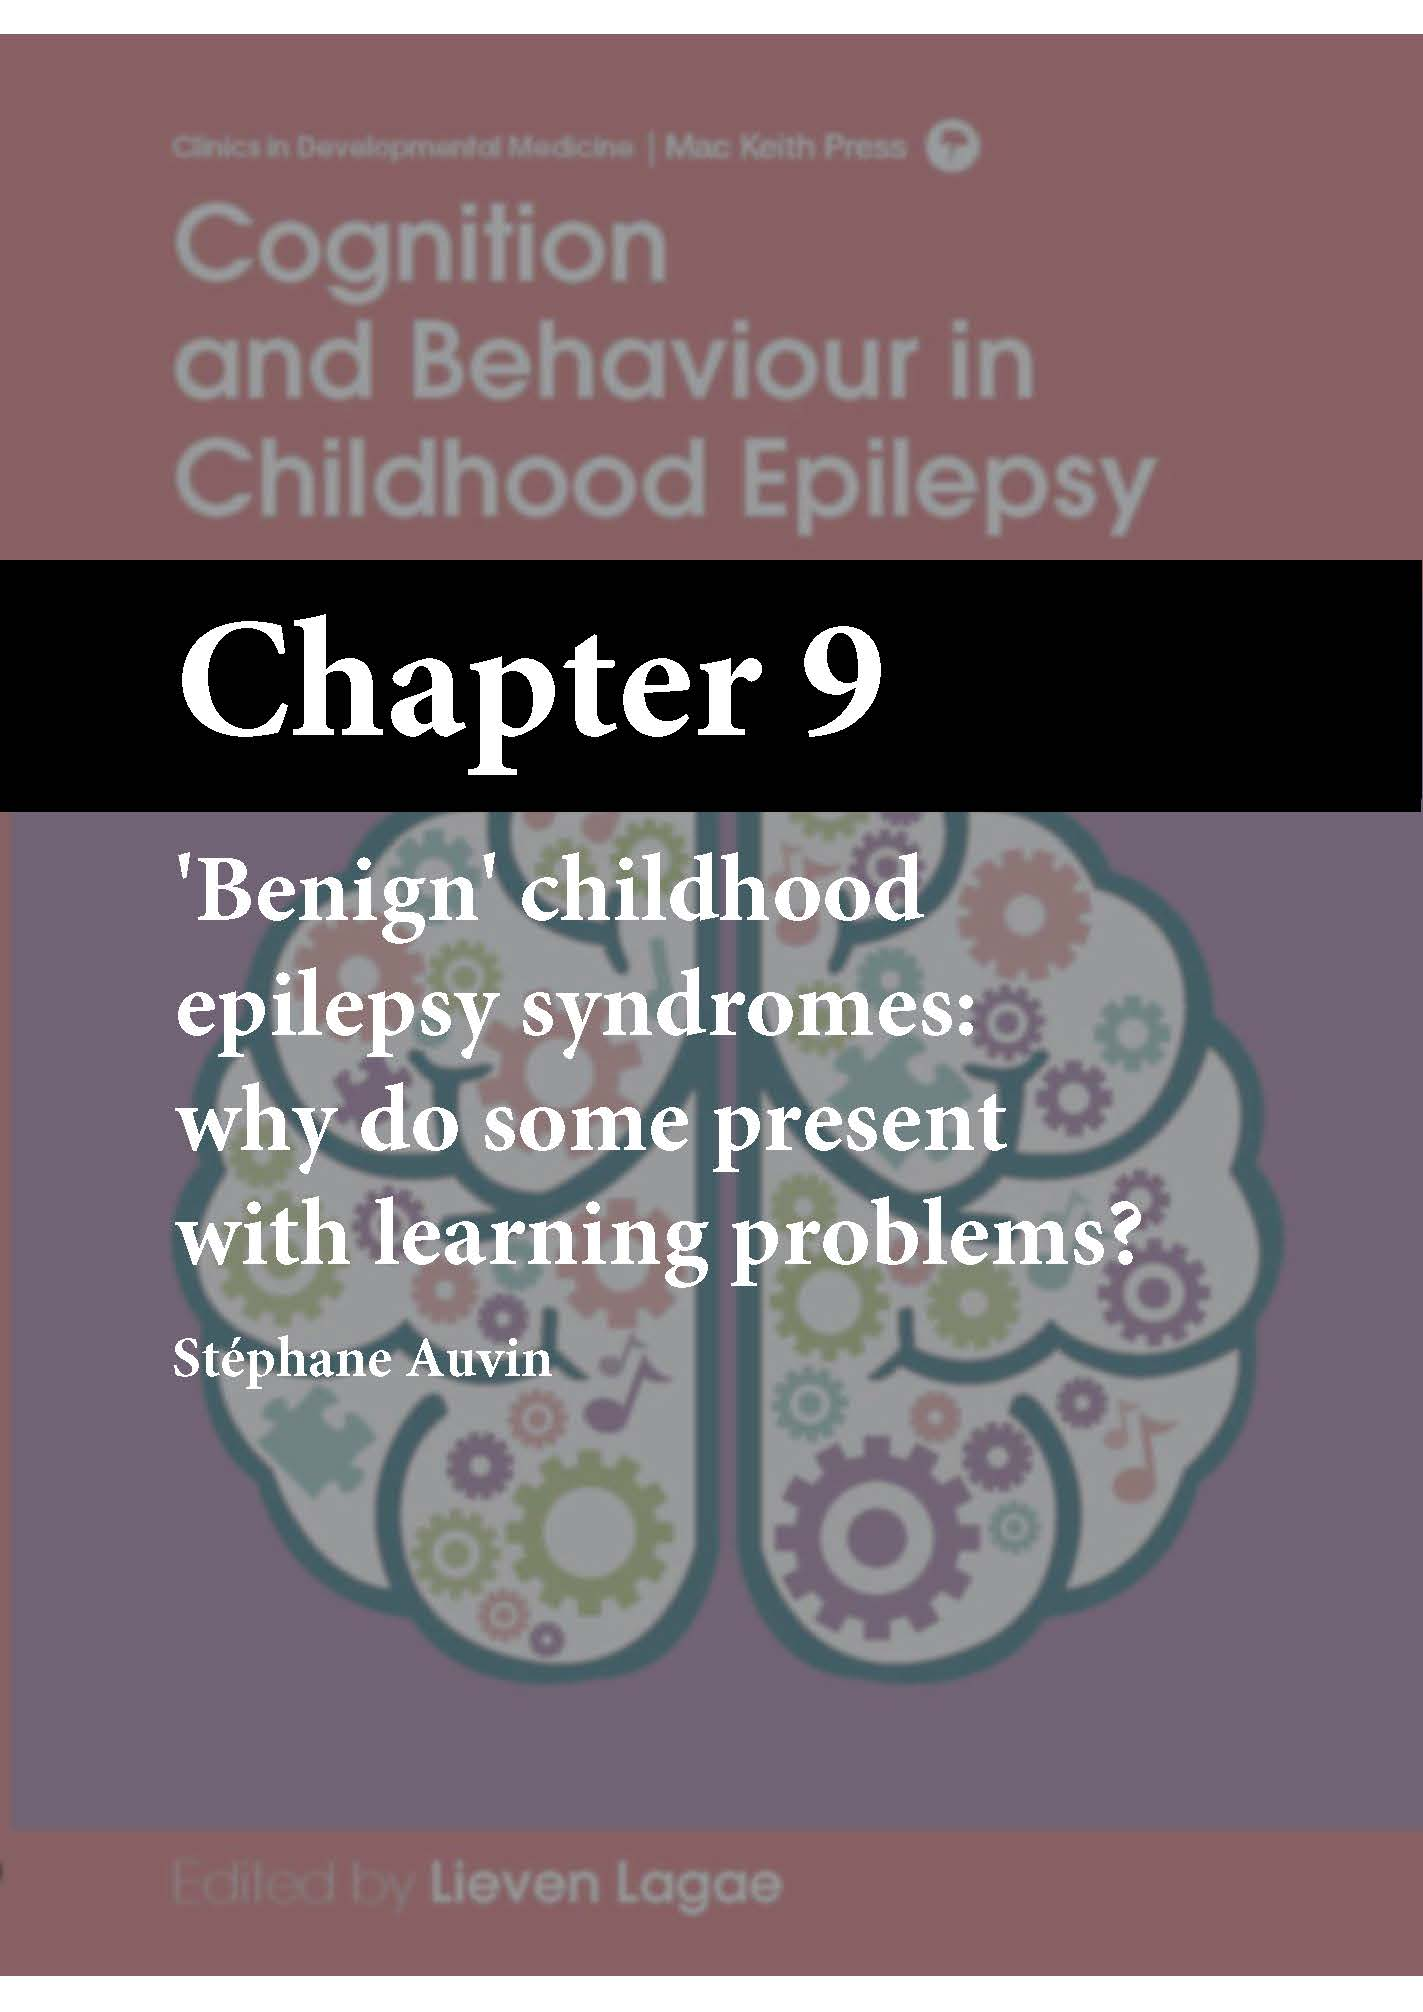 Cognition and Behaviour in Childhood Epilepsy, Lagae, Chapter 9 cover